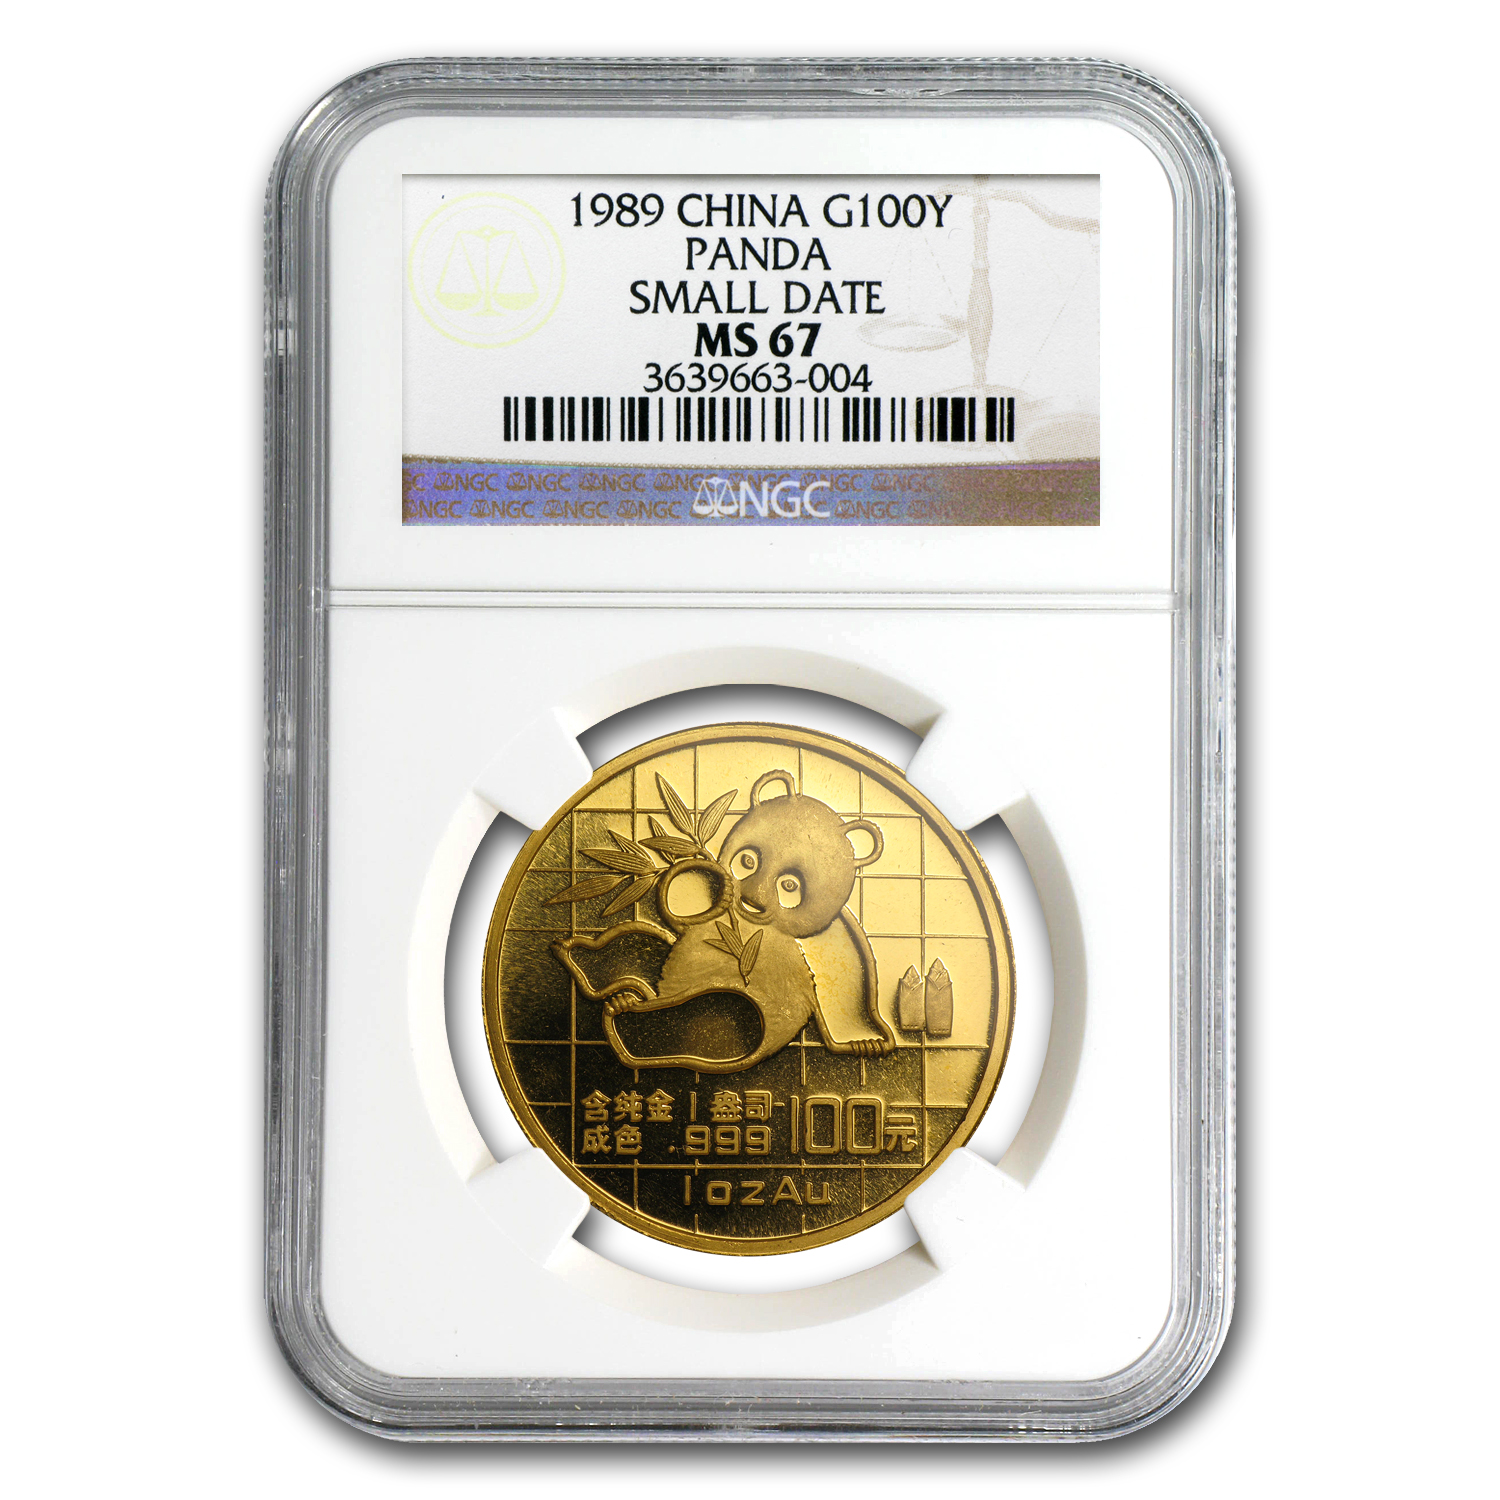 1989 1 oz Gold Chinese Panda MS-67 NGC - Small Date